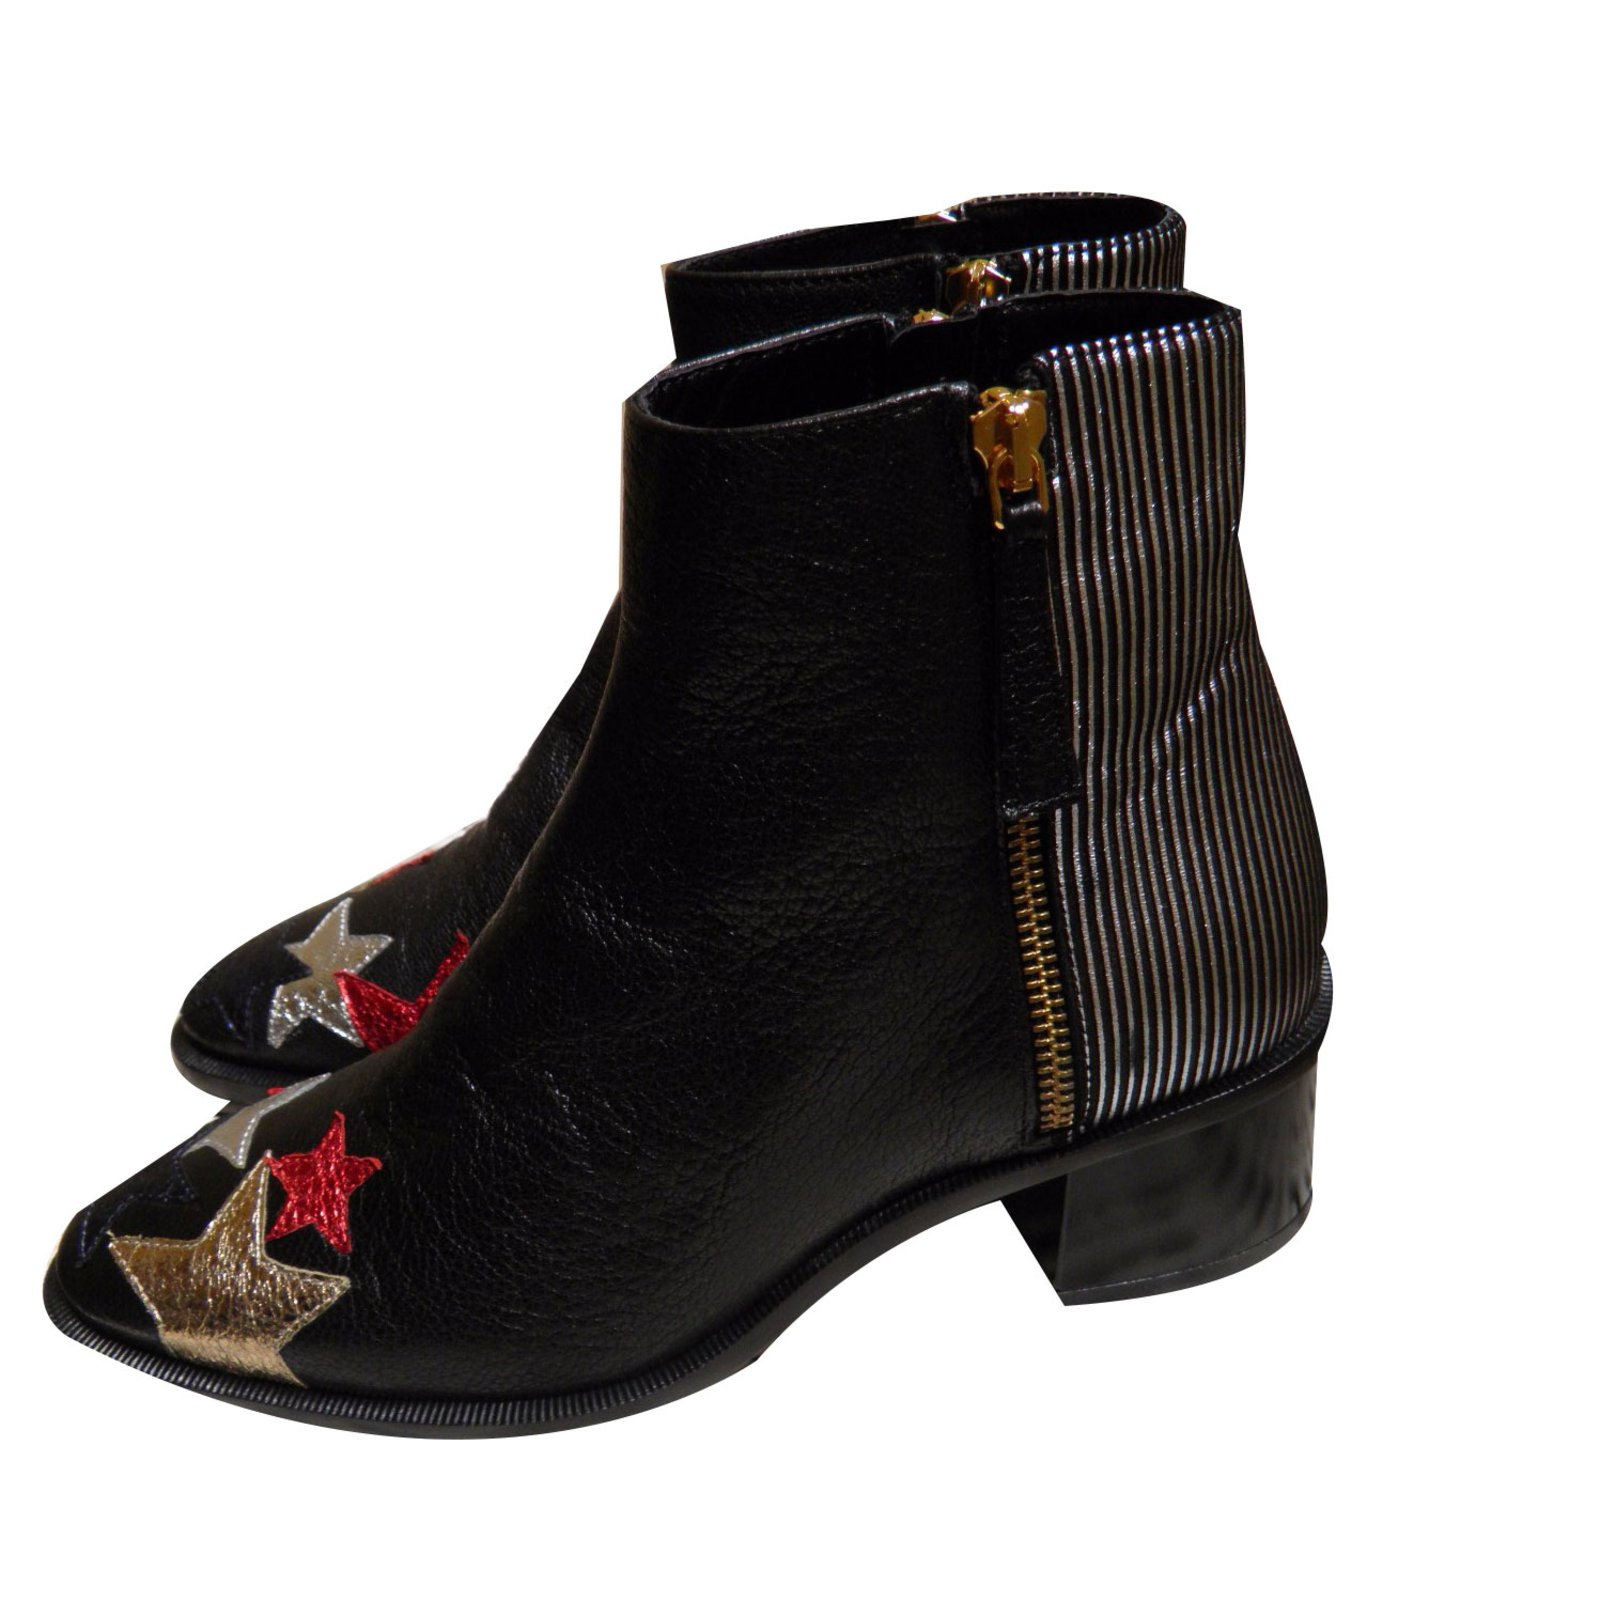 fd6b8bf62308d ... Tommy Hilfiger rock n roll stars patches Ankle Boots Leather Multiple  colors ref.48173 ...